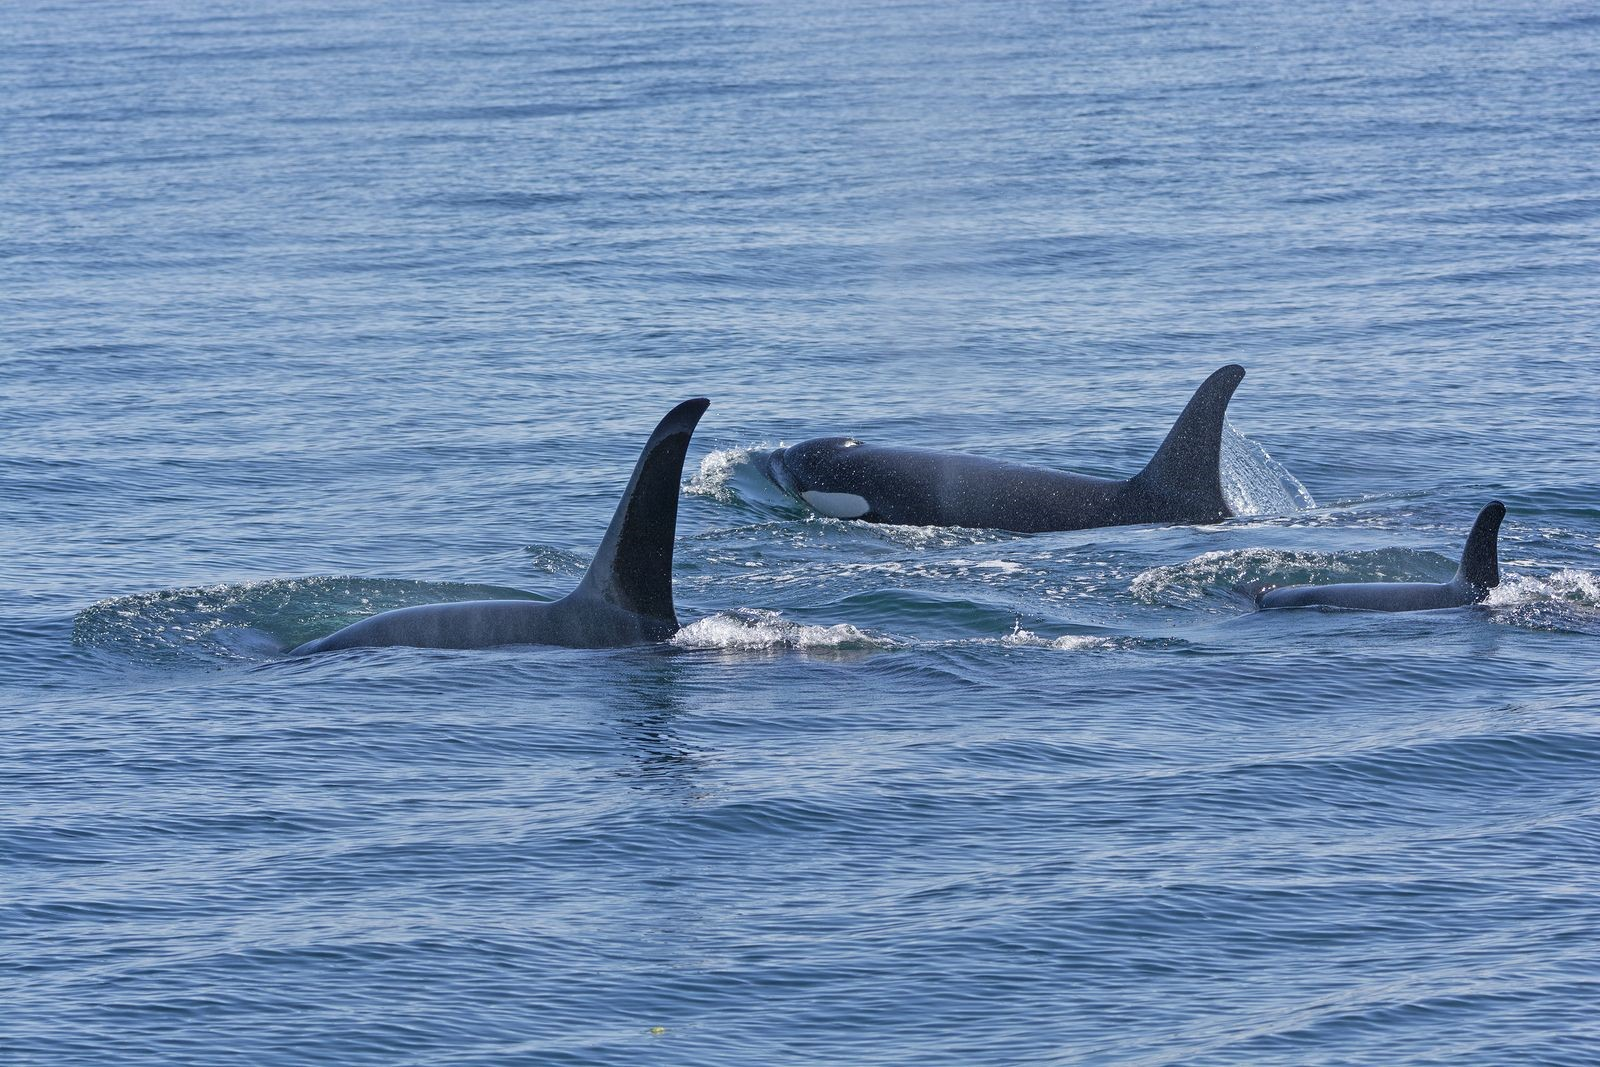 Are You Preparing Soon For A Little San Juan Island Whale Watching?